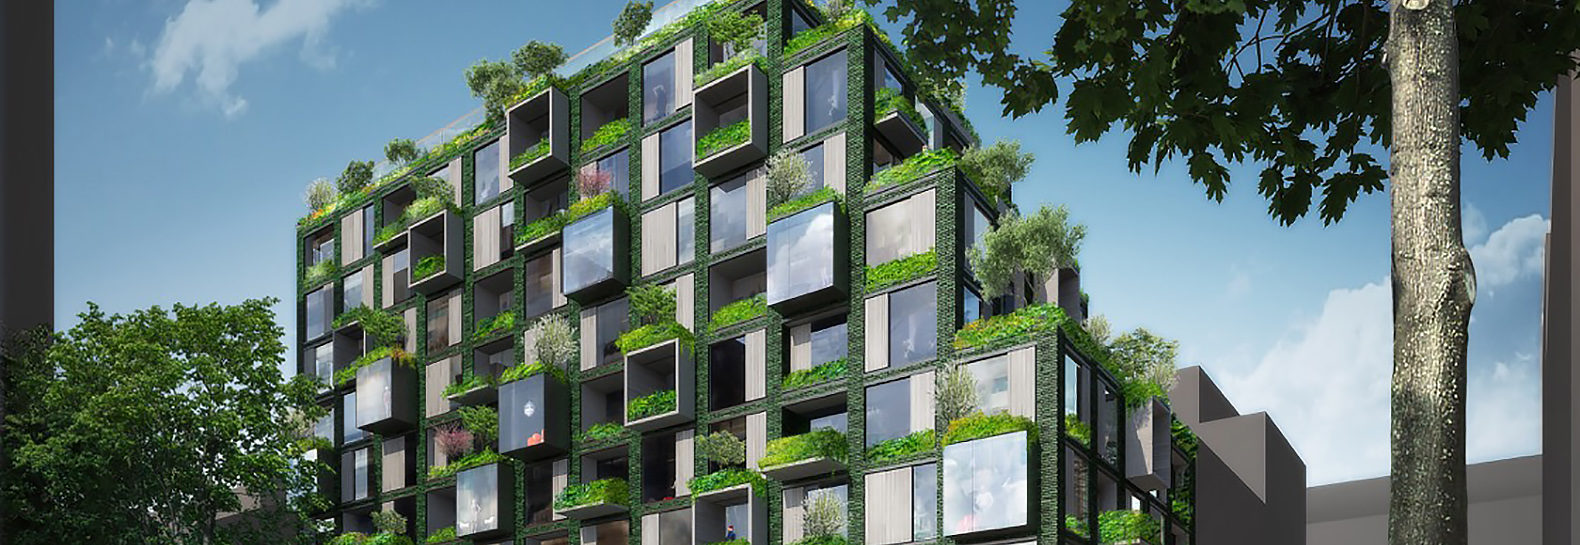 werkbundstadt ingenhoven architects unveil green residential building for berlin 39 s new 39 live. Black Bedroom Furniture Sets. Home Design Ideas